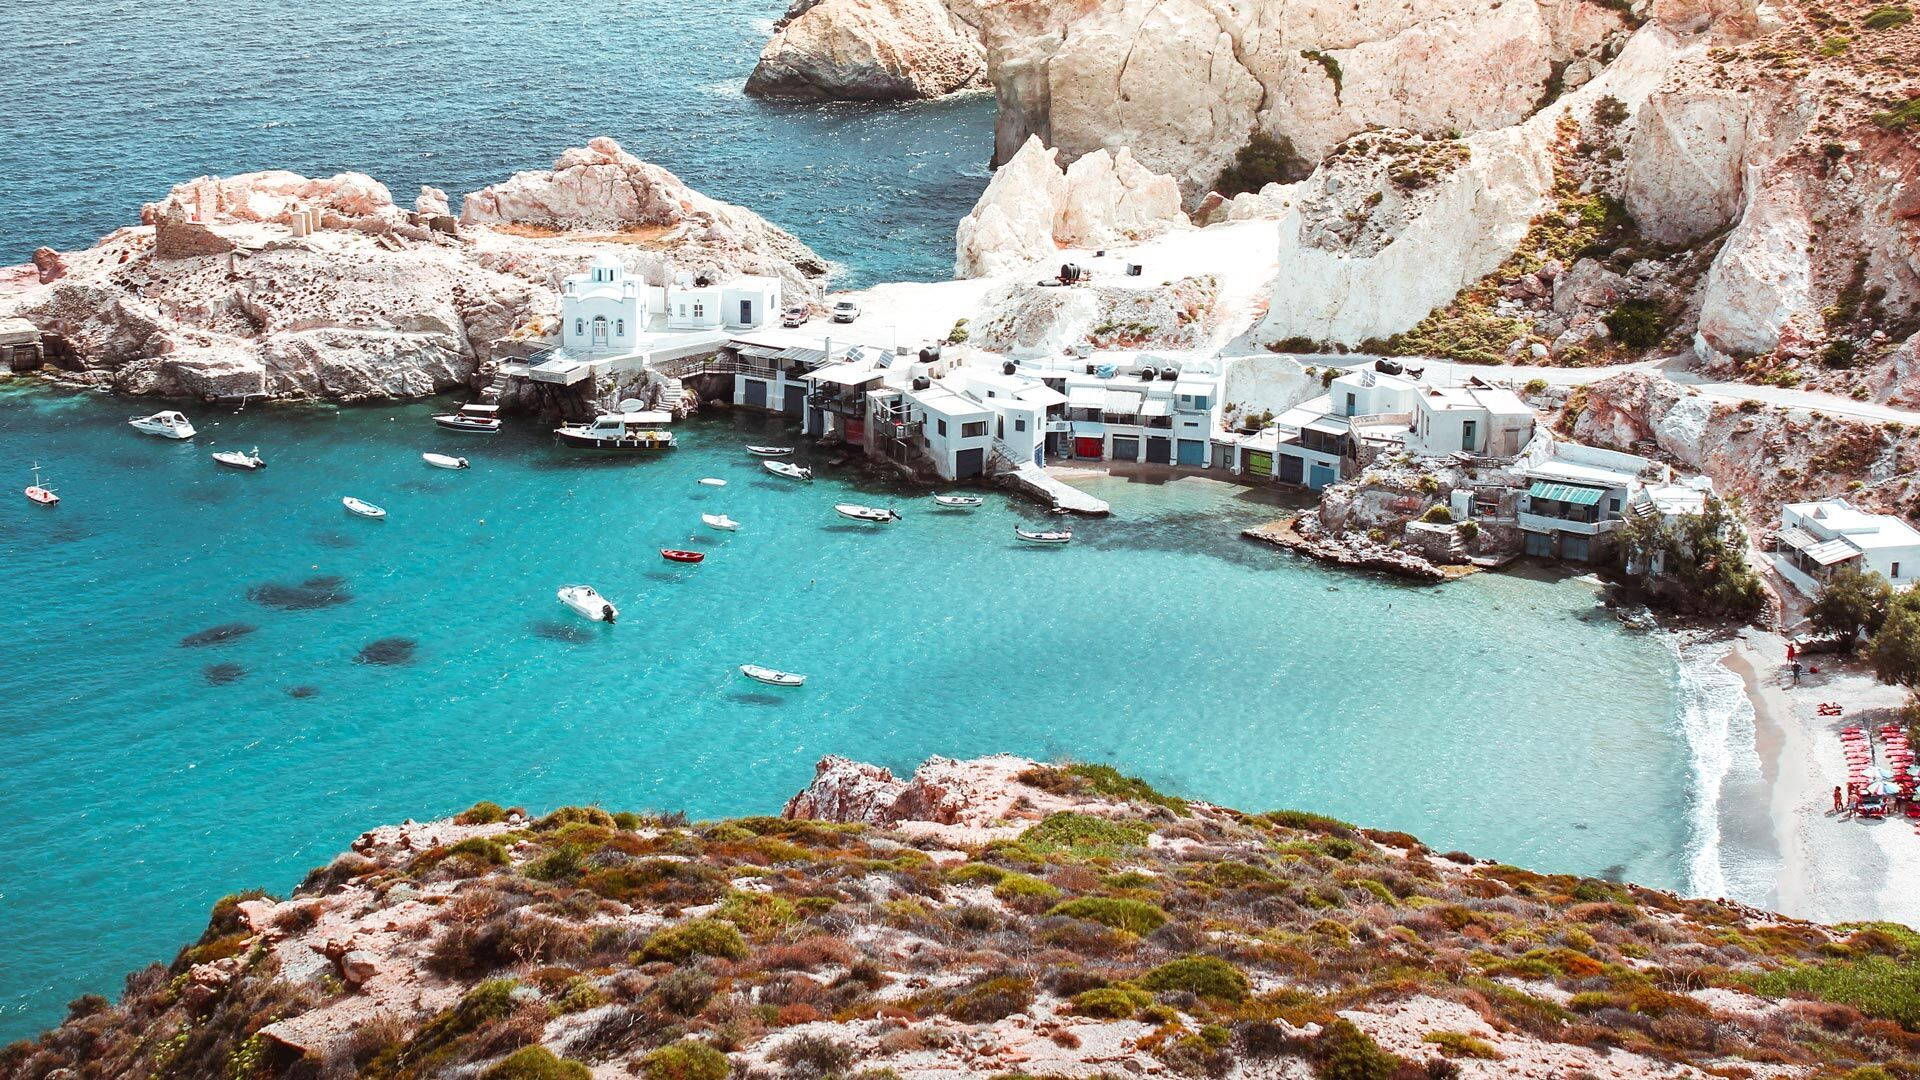 Fyropotamos, a seaside settlement with a tiny sandy beach